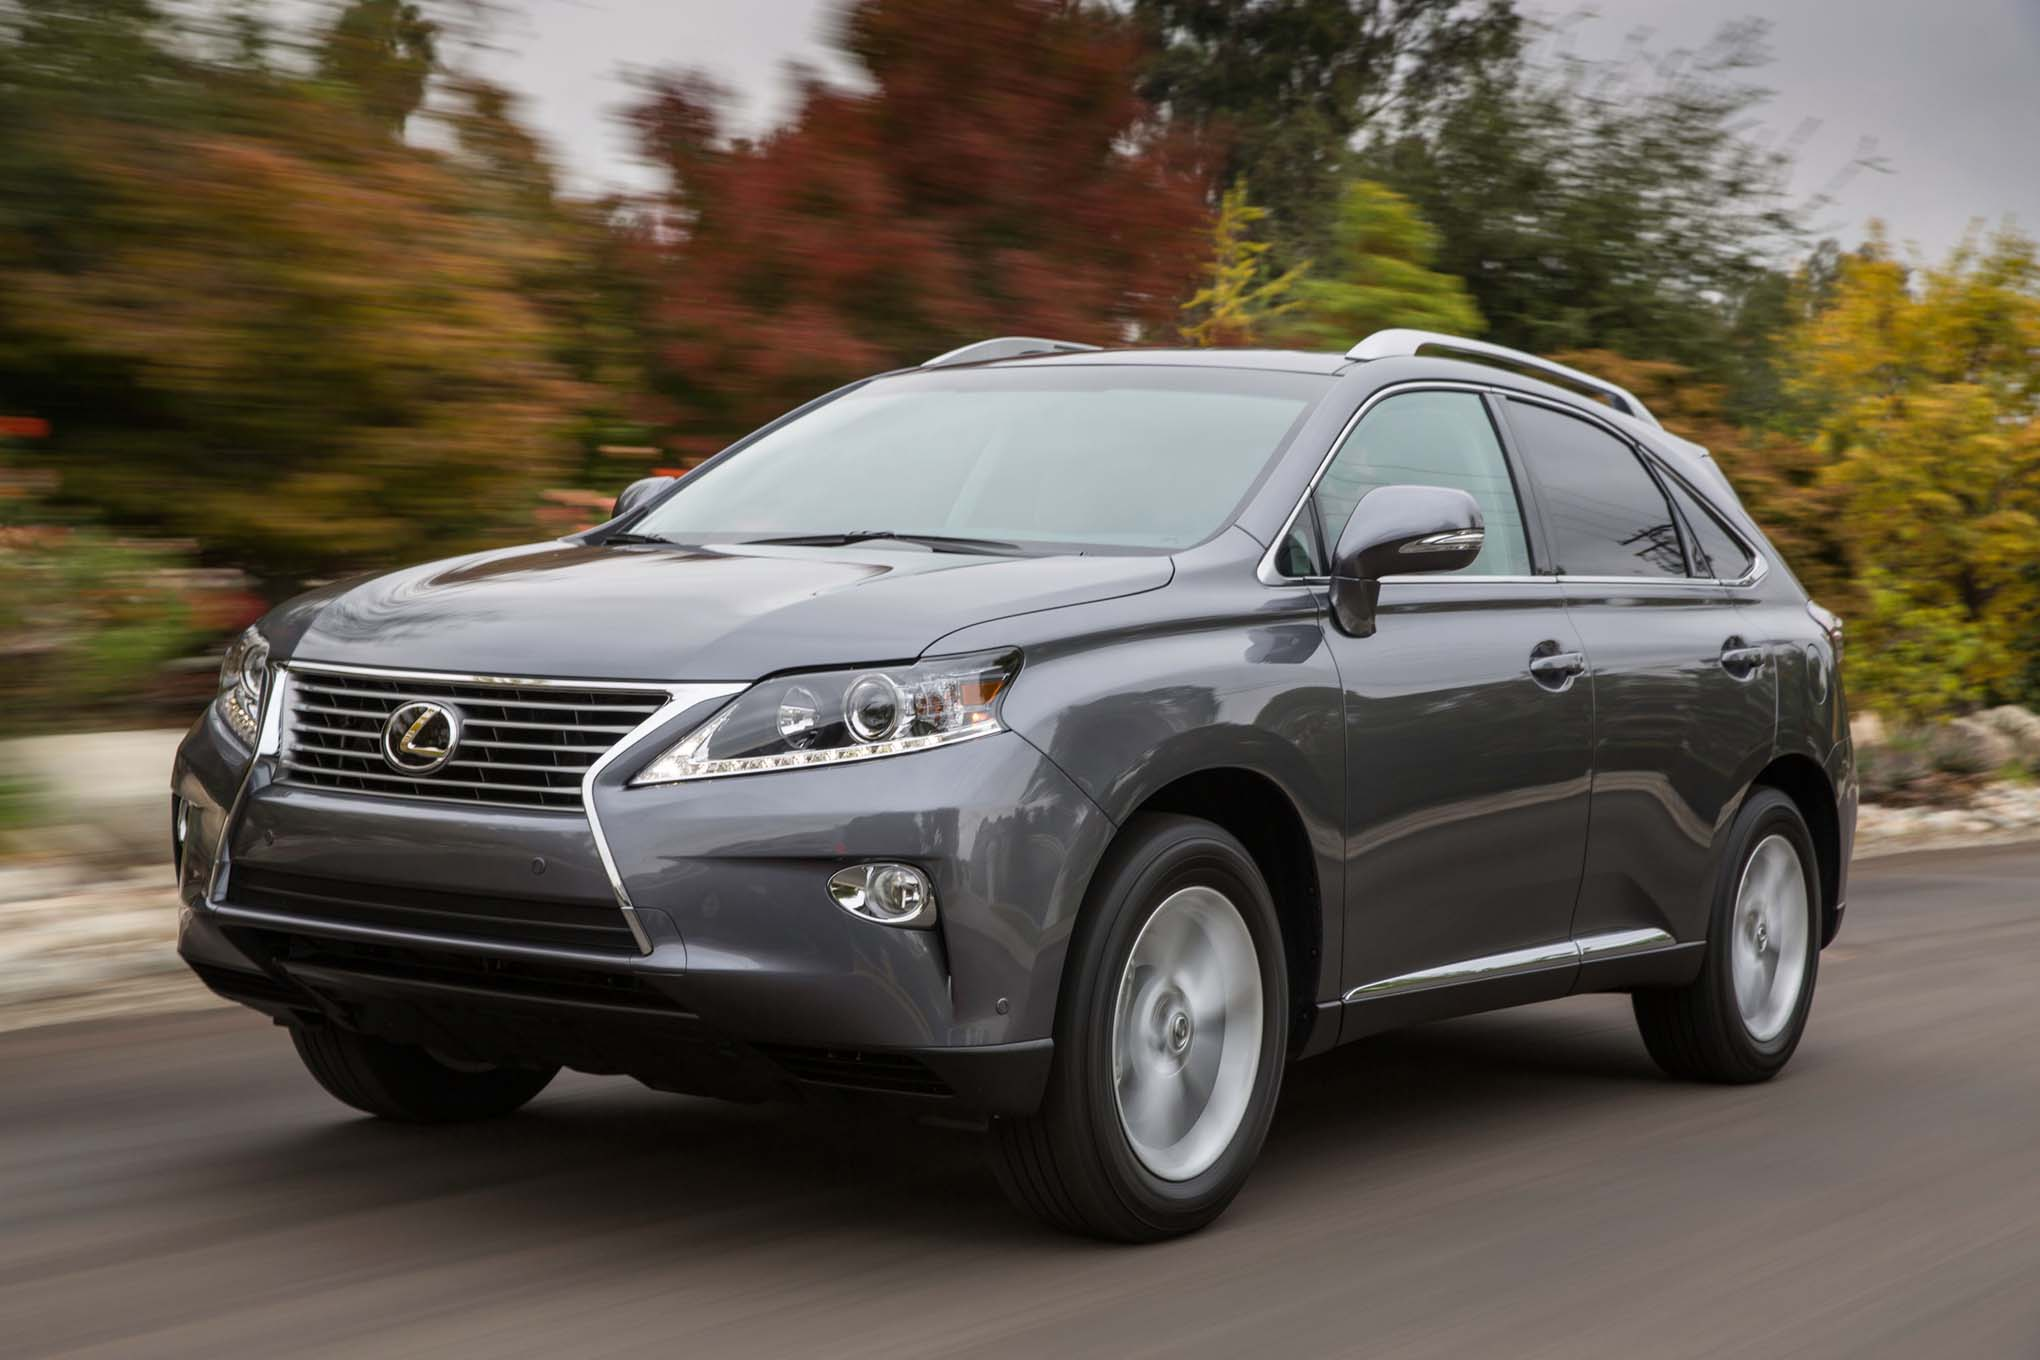 parison Toyota Harrier 2015 vs Lexus RX 350 Crafted Line